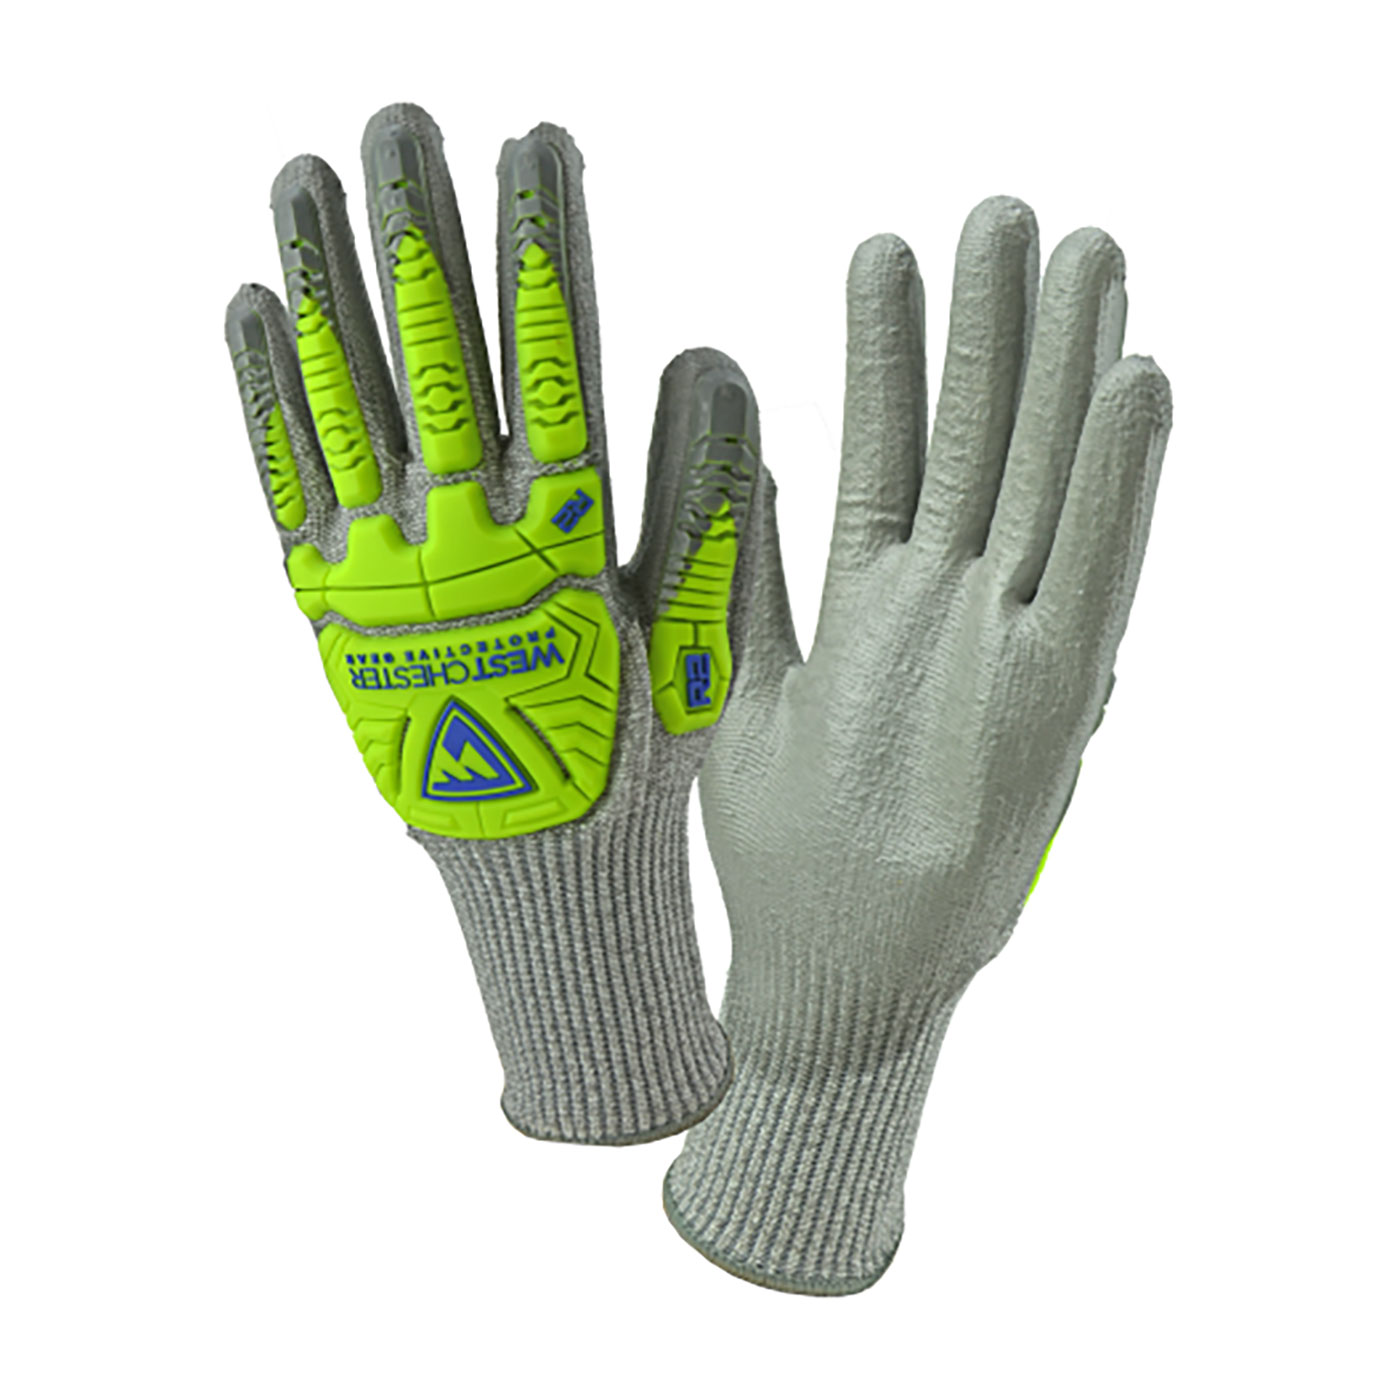 West Chester 710HGUBHVG S 710HGUBHVG R2™ Seamless Knit HPPE Blended Cut-Resistant Gloves, Small, HPPE, Gray, Rib Knit Cuff